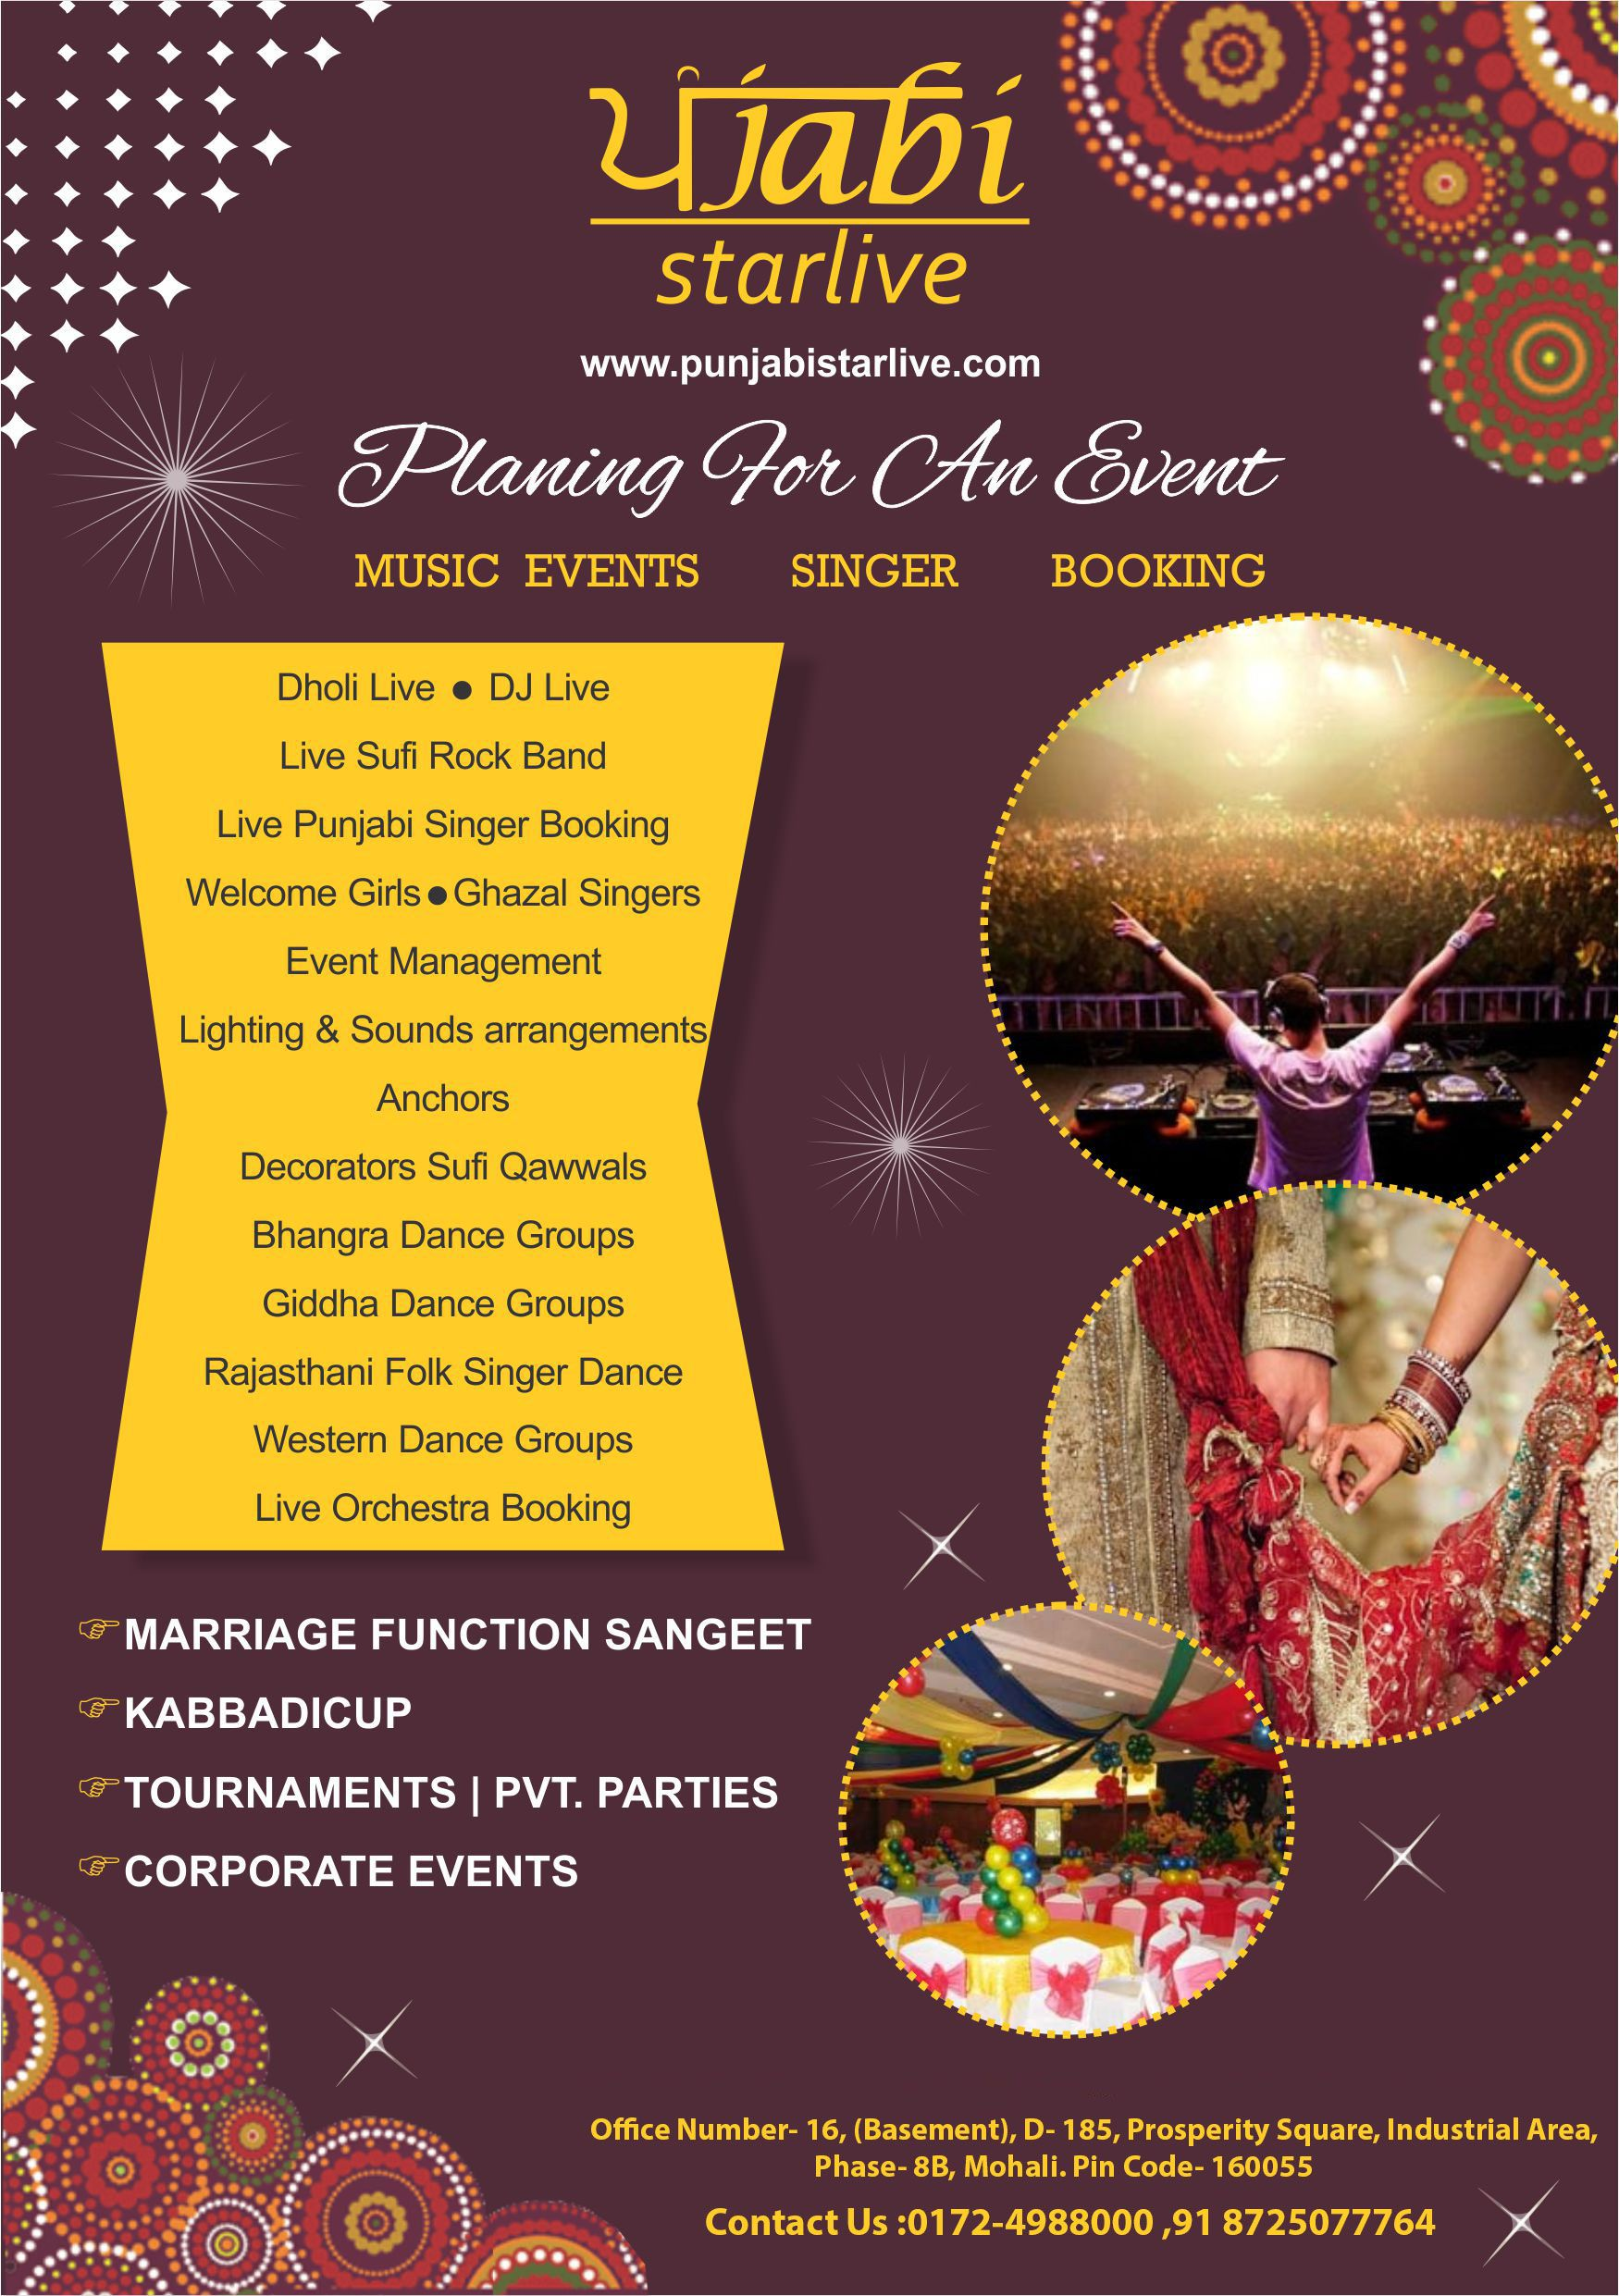 Memorable Experiences Through Creative Event Planning And Management Company In Chandigarh